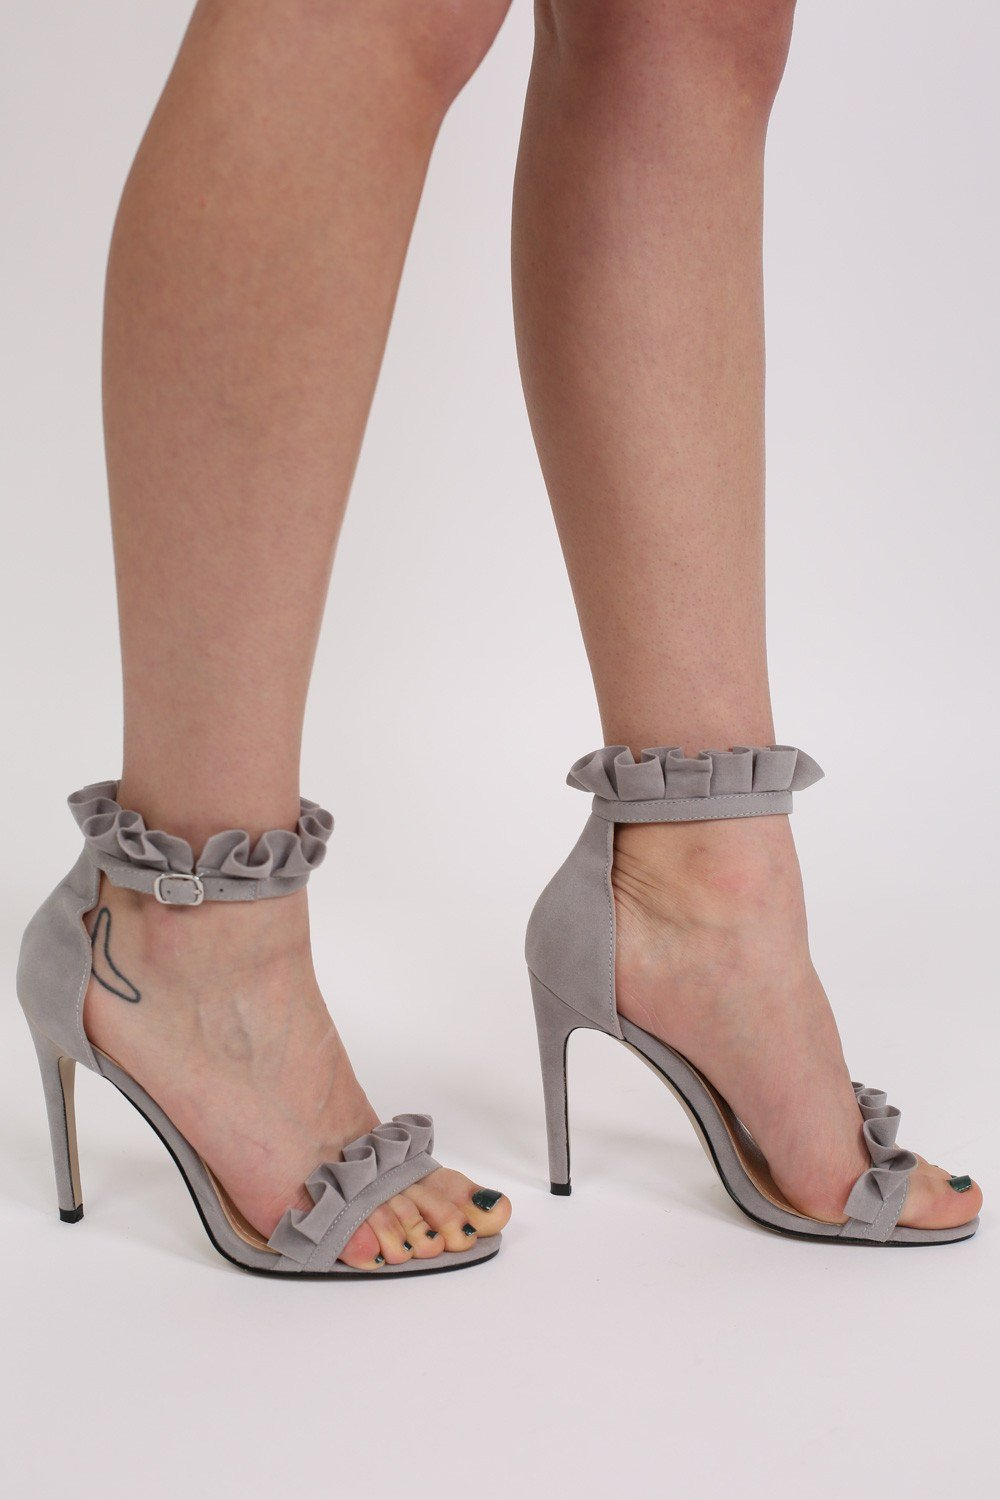 Frill Detail Strappy High Heel Sandals in Light Grey 0